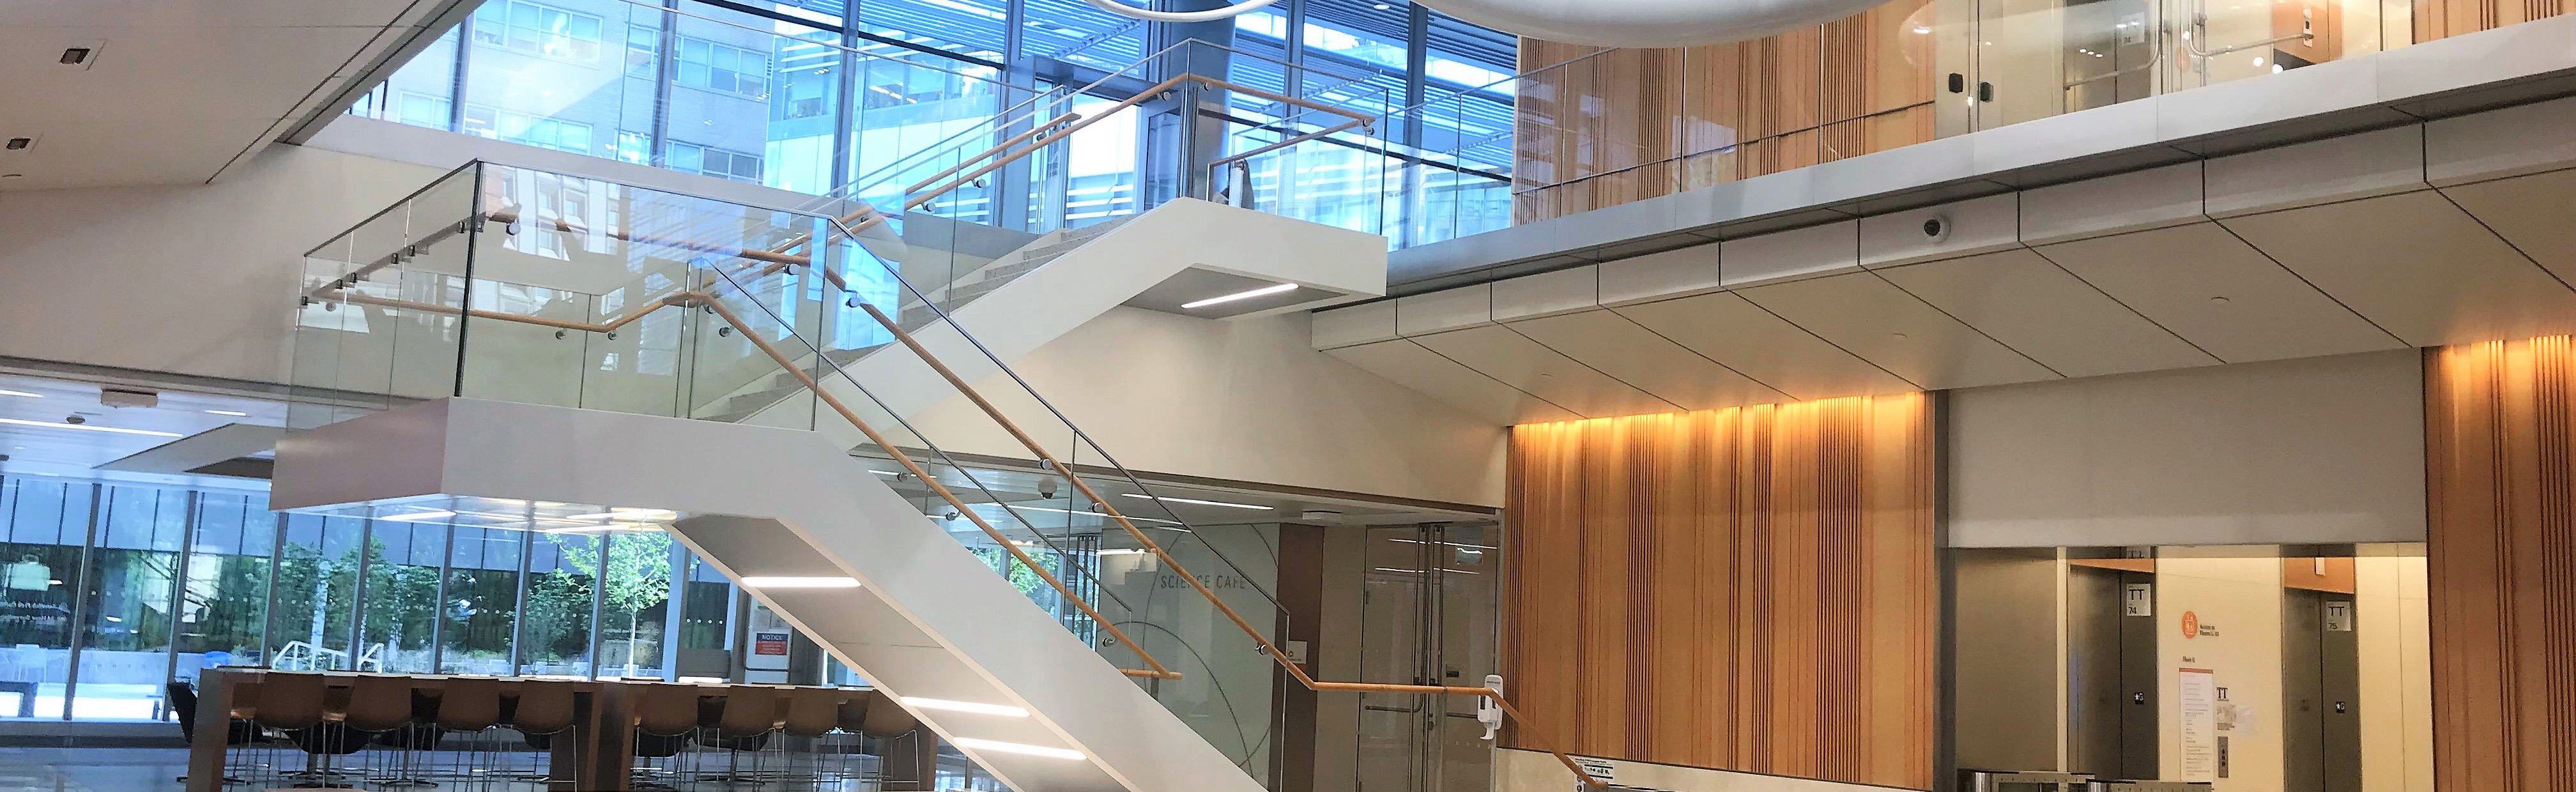 New York University - Langone Medical Center - Science Building - Staircase E, New York, NY